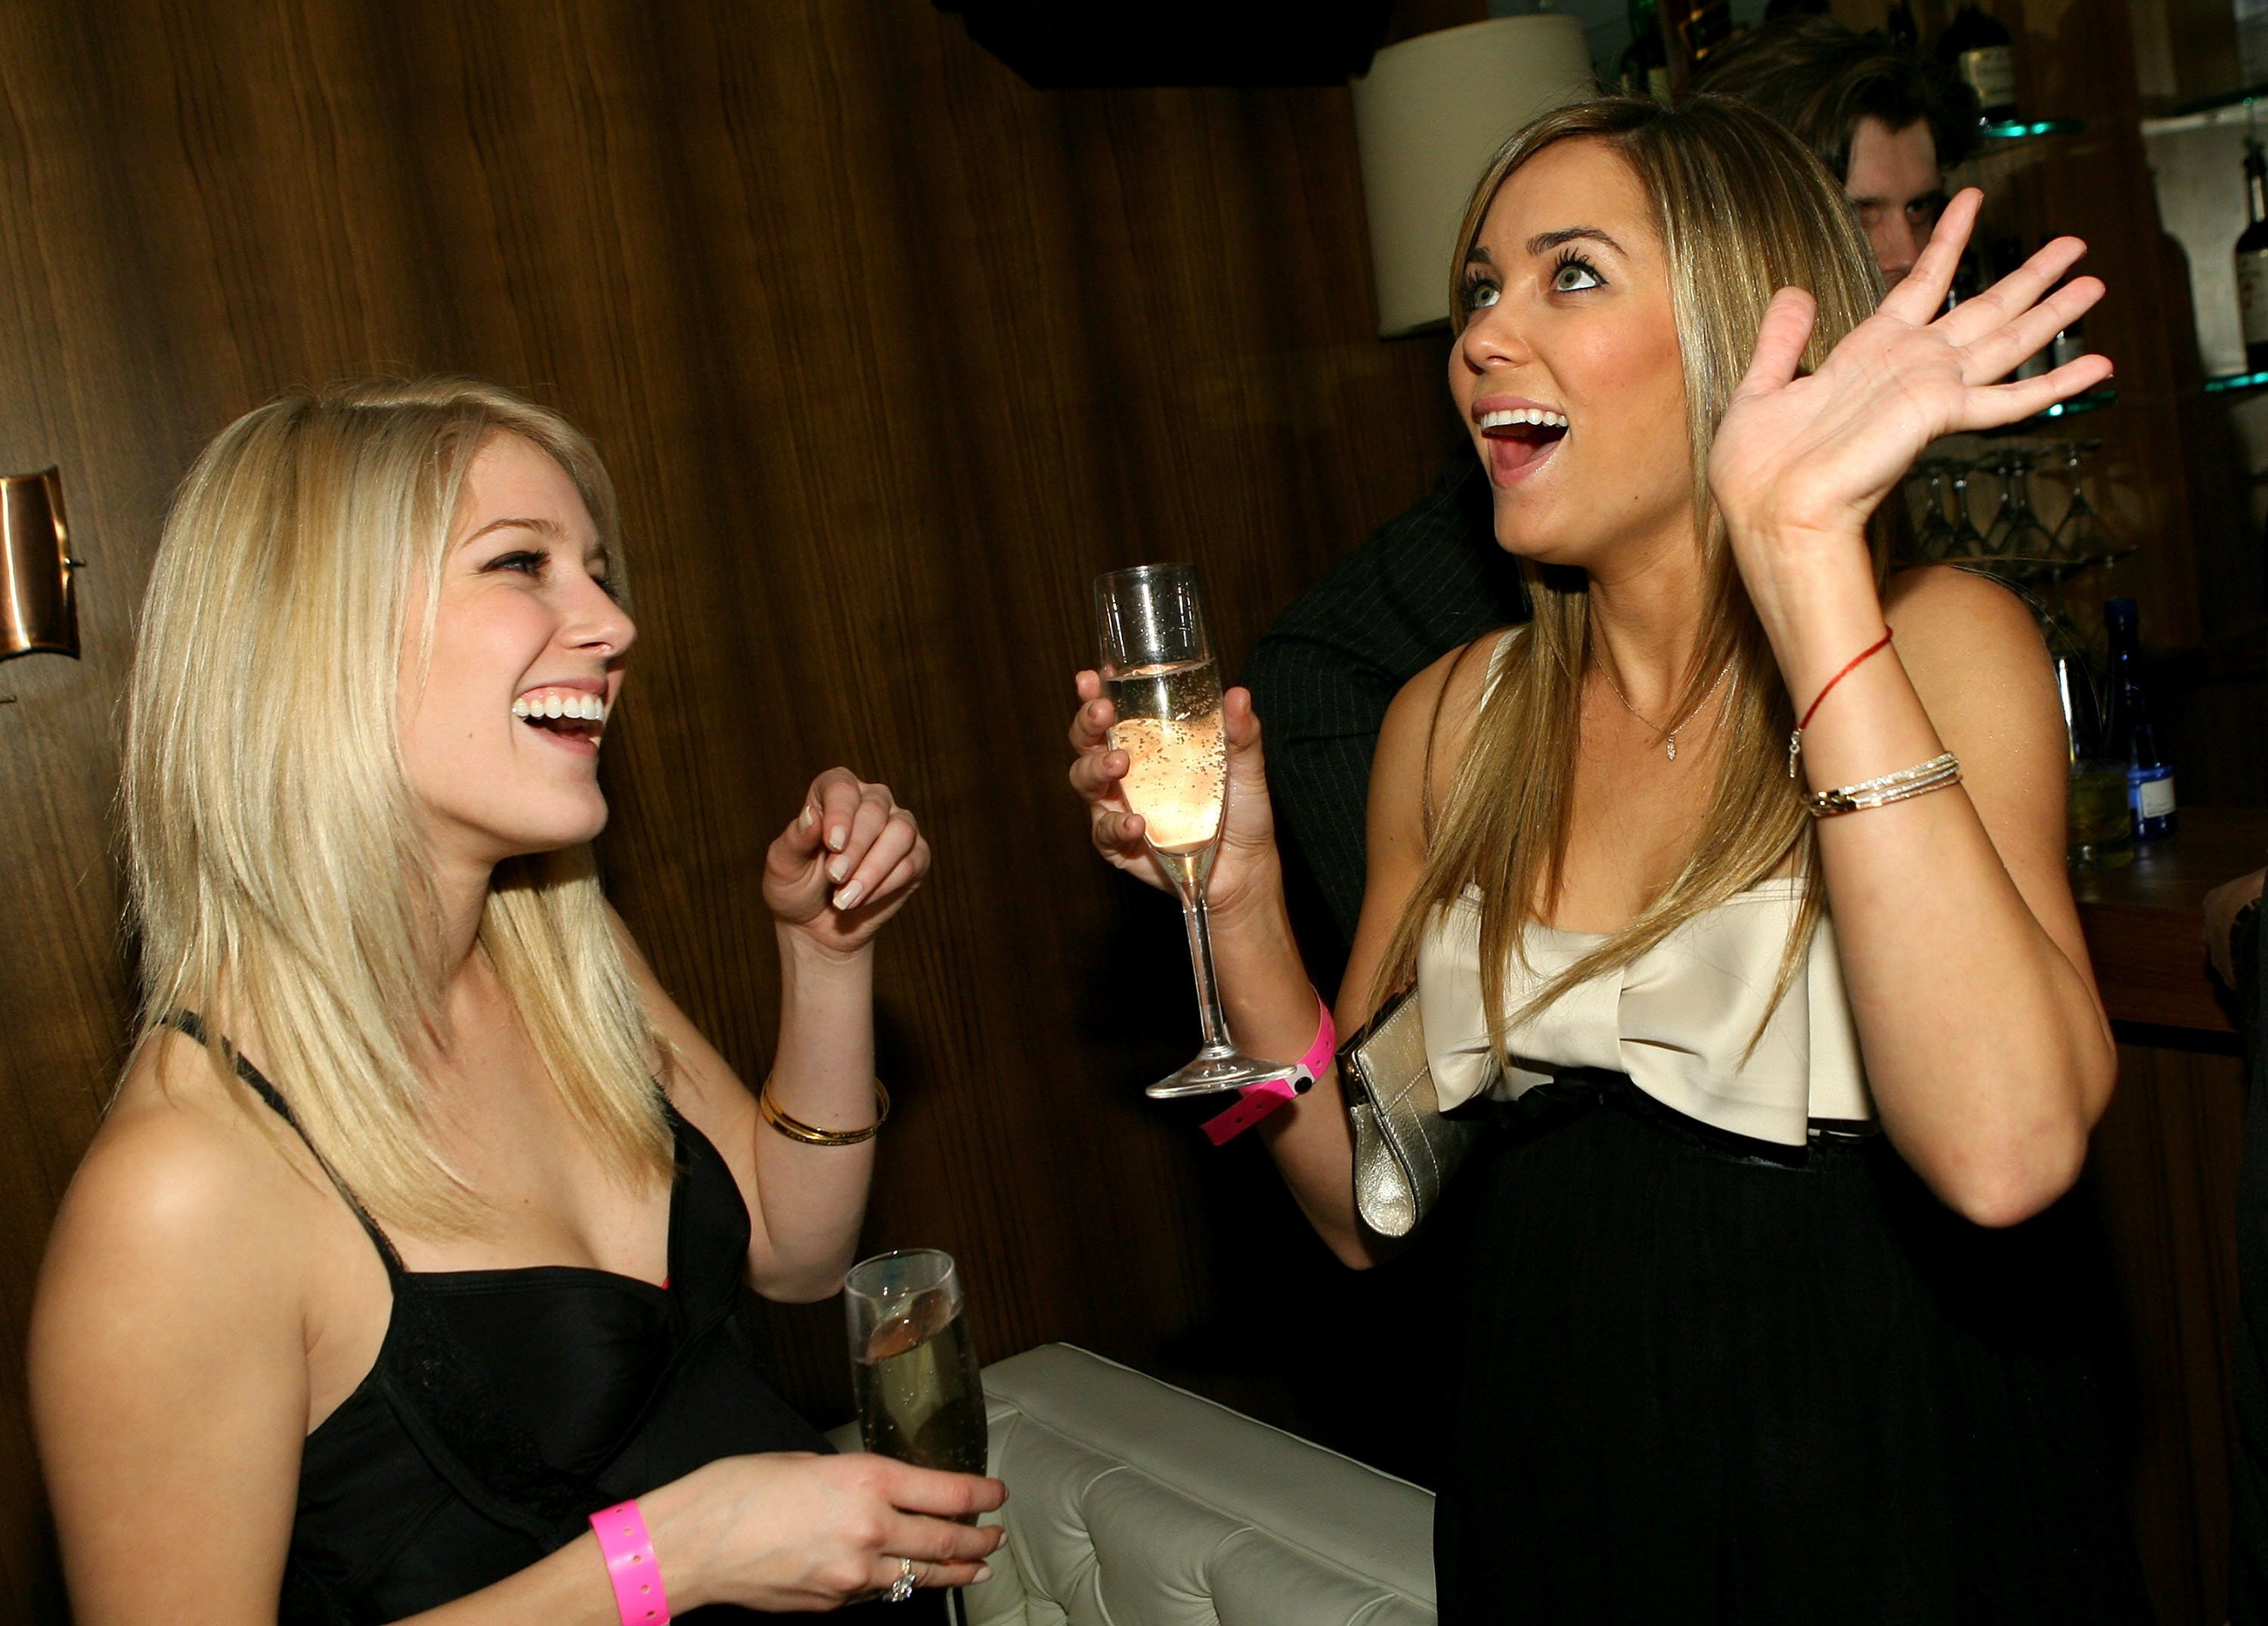 WEST HOLLYWOOD, CA - FEBRUARY 01:  ***EXCLUSIVE ACCESS***  Heidi Montag and Lauren Conrad toast to champagne as mark. celebrates new spokesperson Lauren Conrad's 21st birthday at Area on February 1, 2007 in West Hollywood, California.  (Photo by Michael Buckner/Getty Images for mark.)